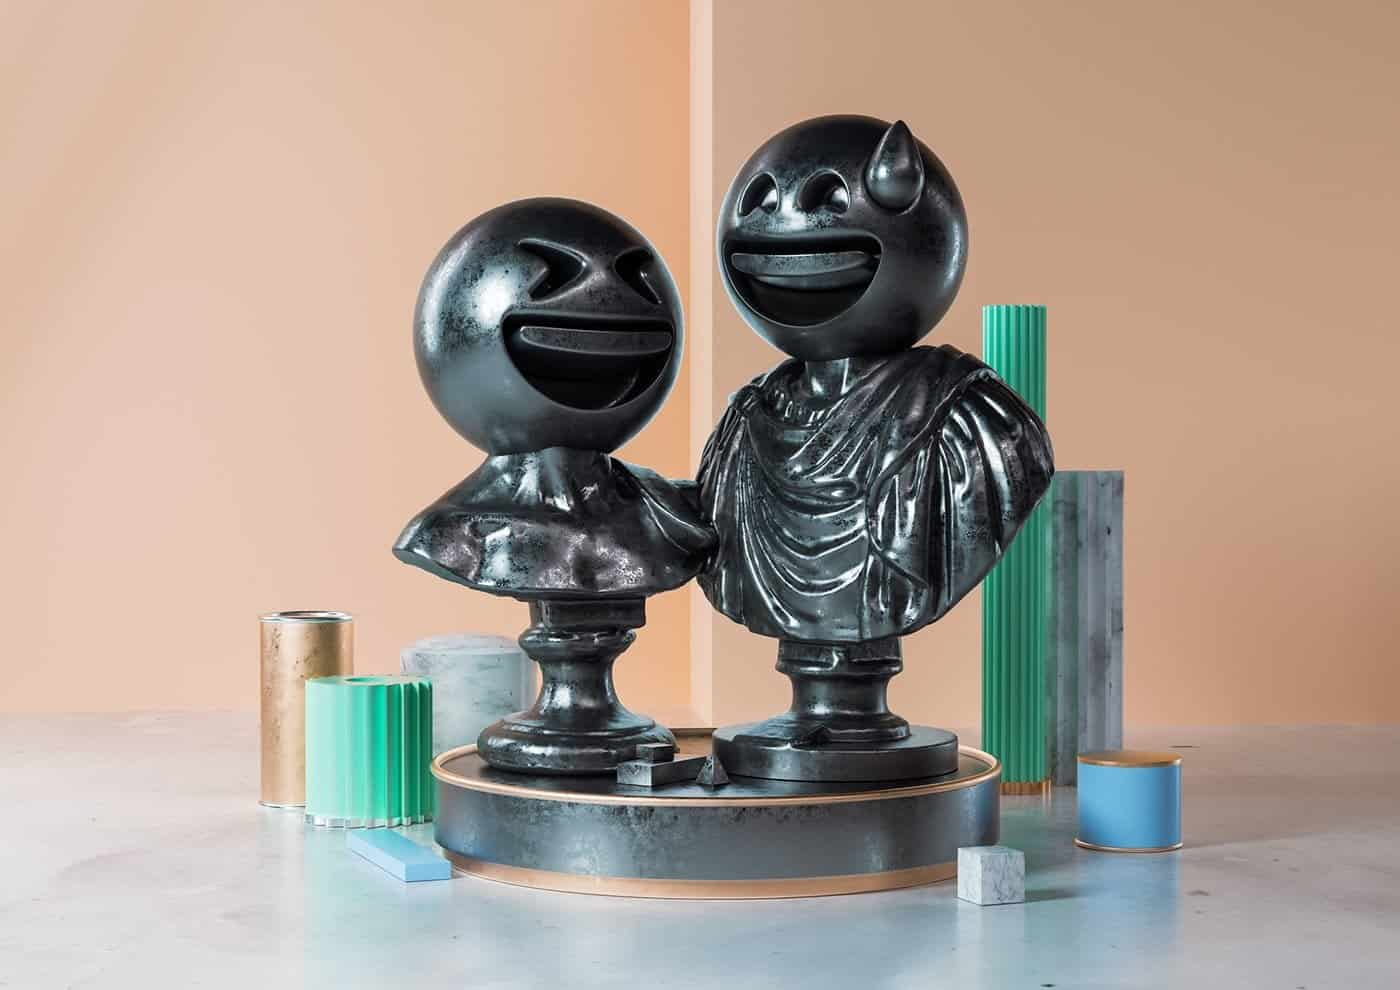 sculpturen en emoji's